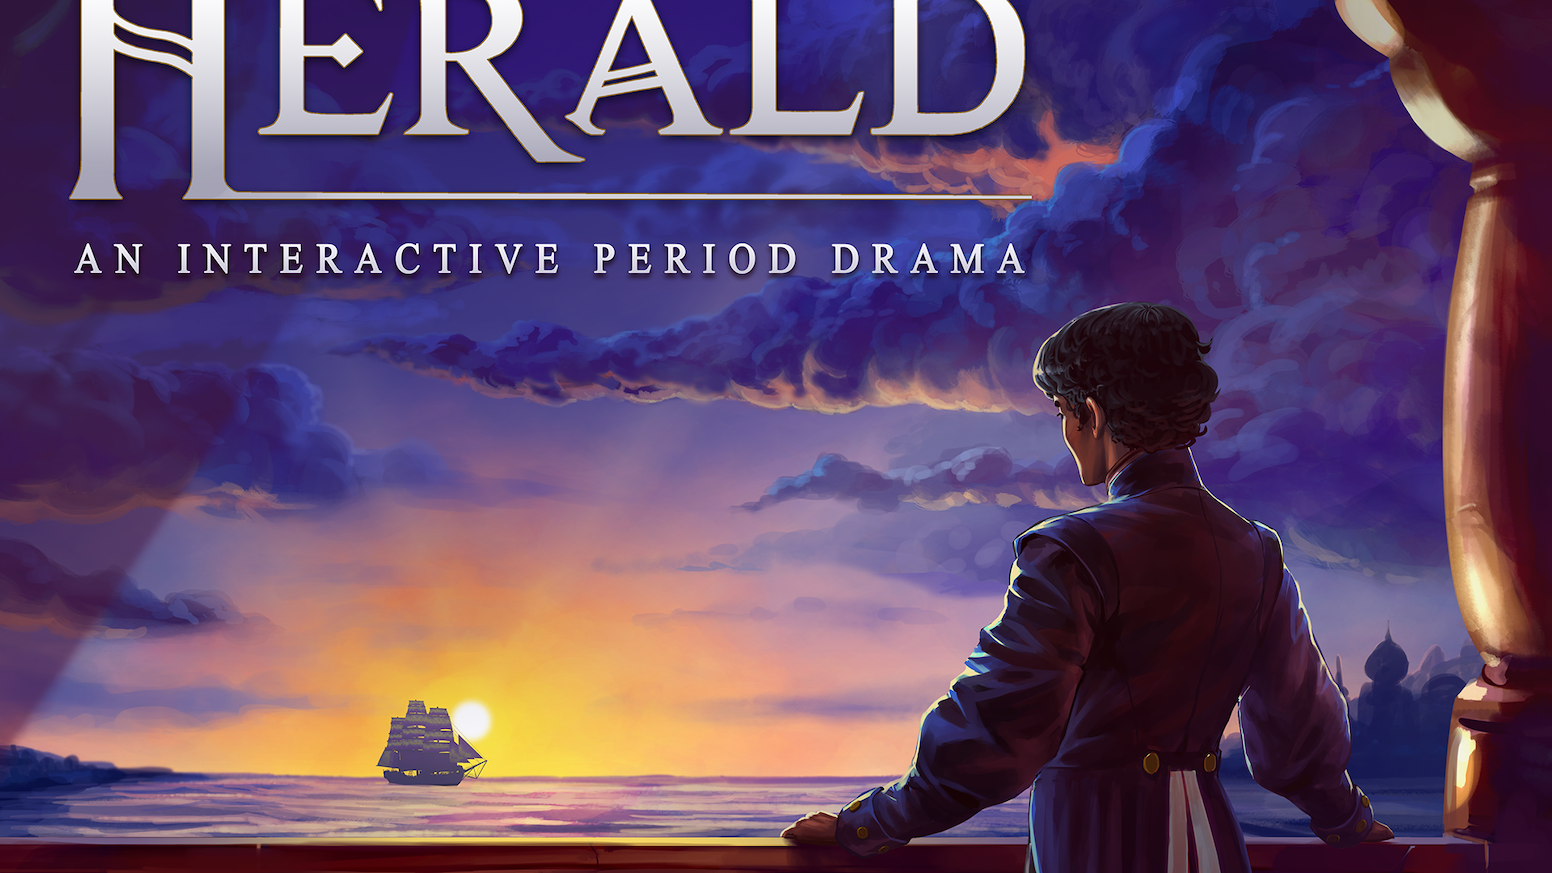 Herald is an interactive period drama about colonialism. A choice-driven, 3D point and click adventure game for PC, Mac and Linux.